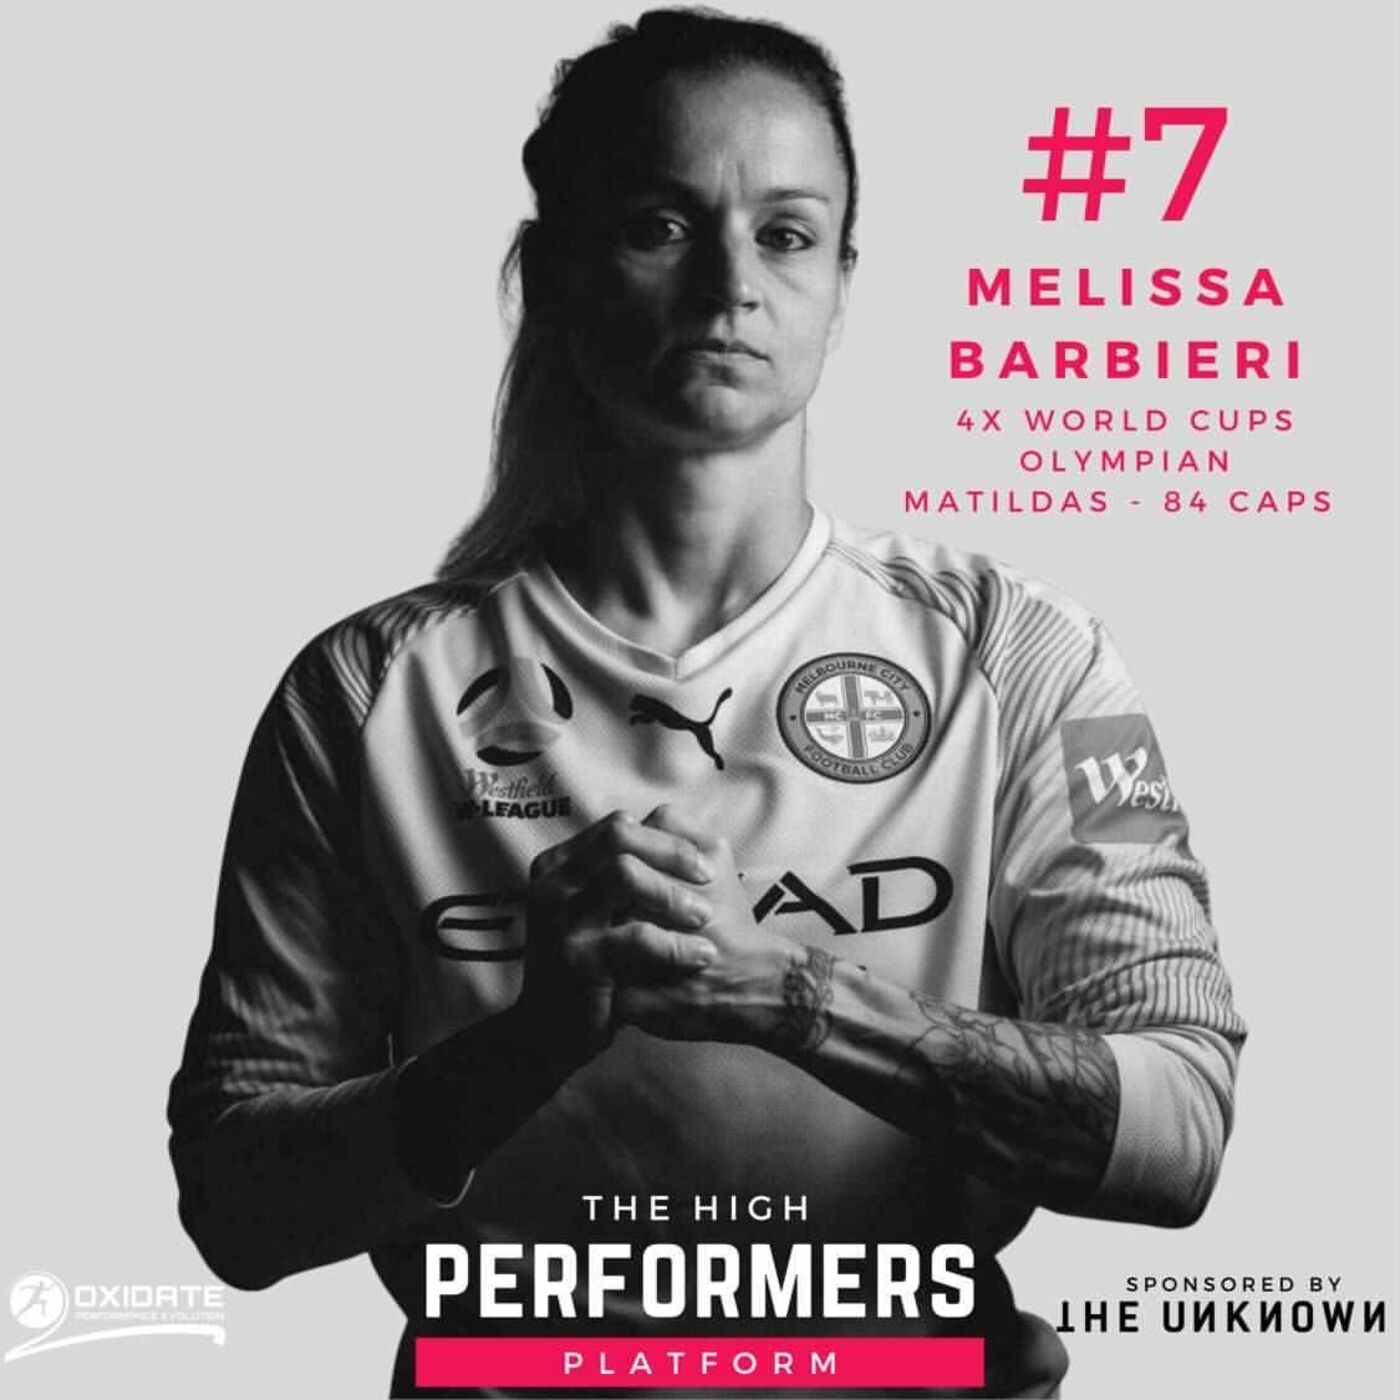 #7: Melissa Barbieri - Matilda's Legend & Football Great - Tune in for this extraordinary story. 4 world cup campaigns, Captain for her country and going to the Olympic Games